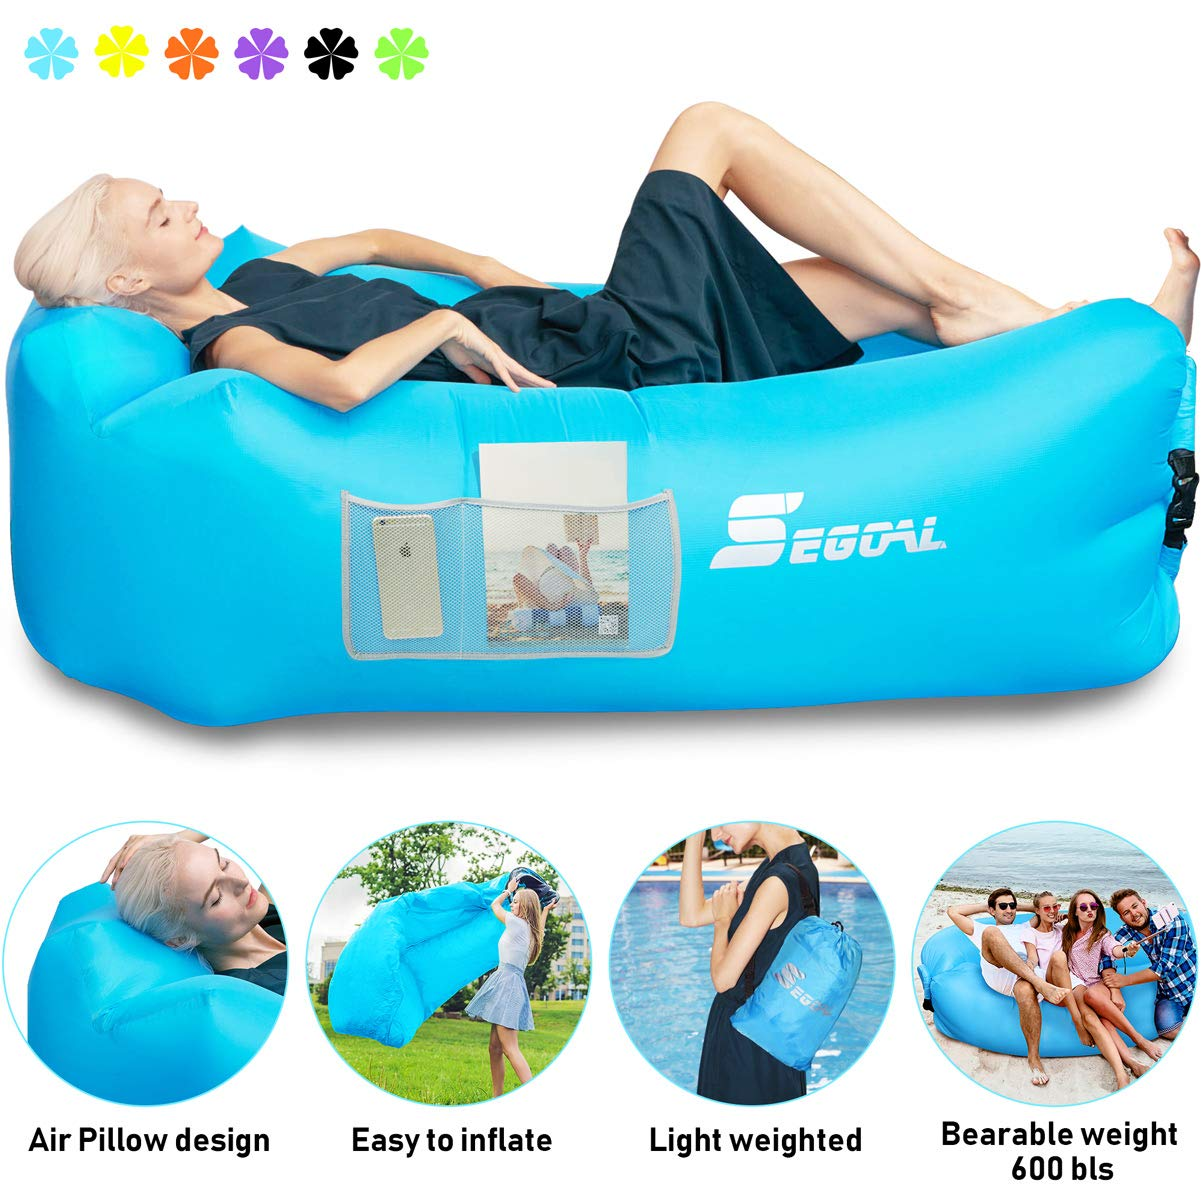 SEGOAL Inflatable Lounger Air Sofa Pouch Inflatable Couch Air Chair